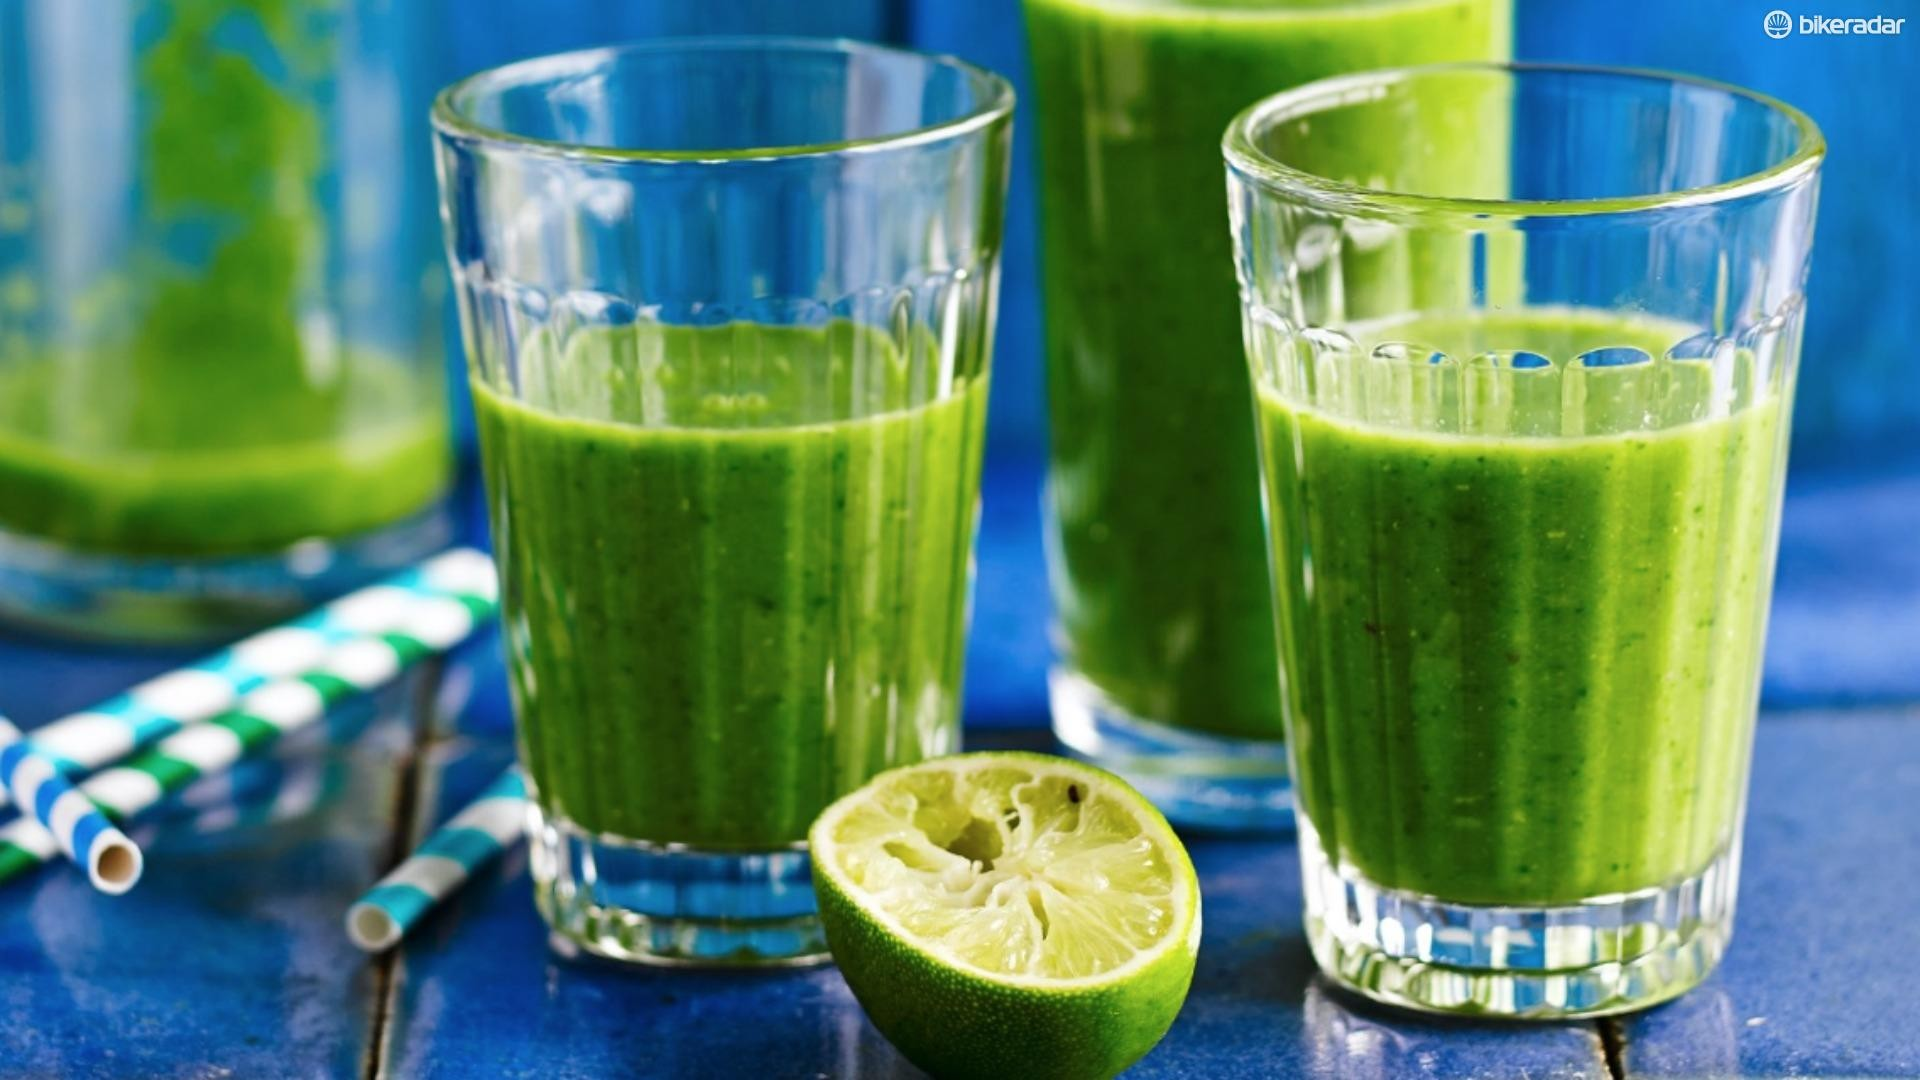 We love the crazy green colour of this smoothie!